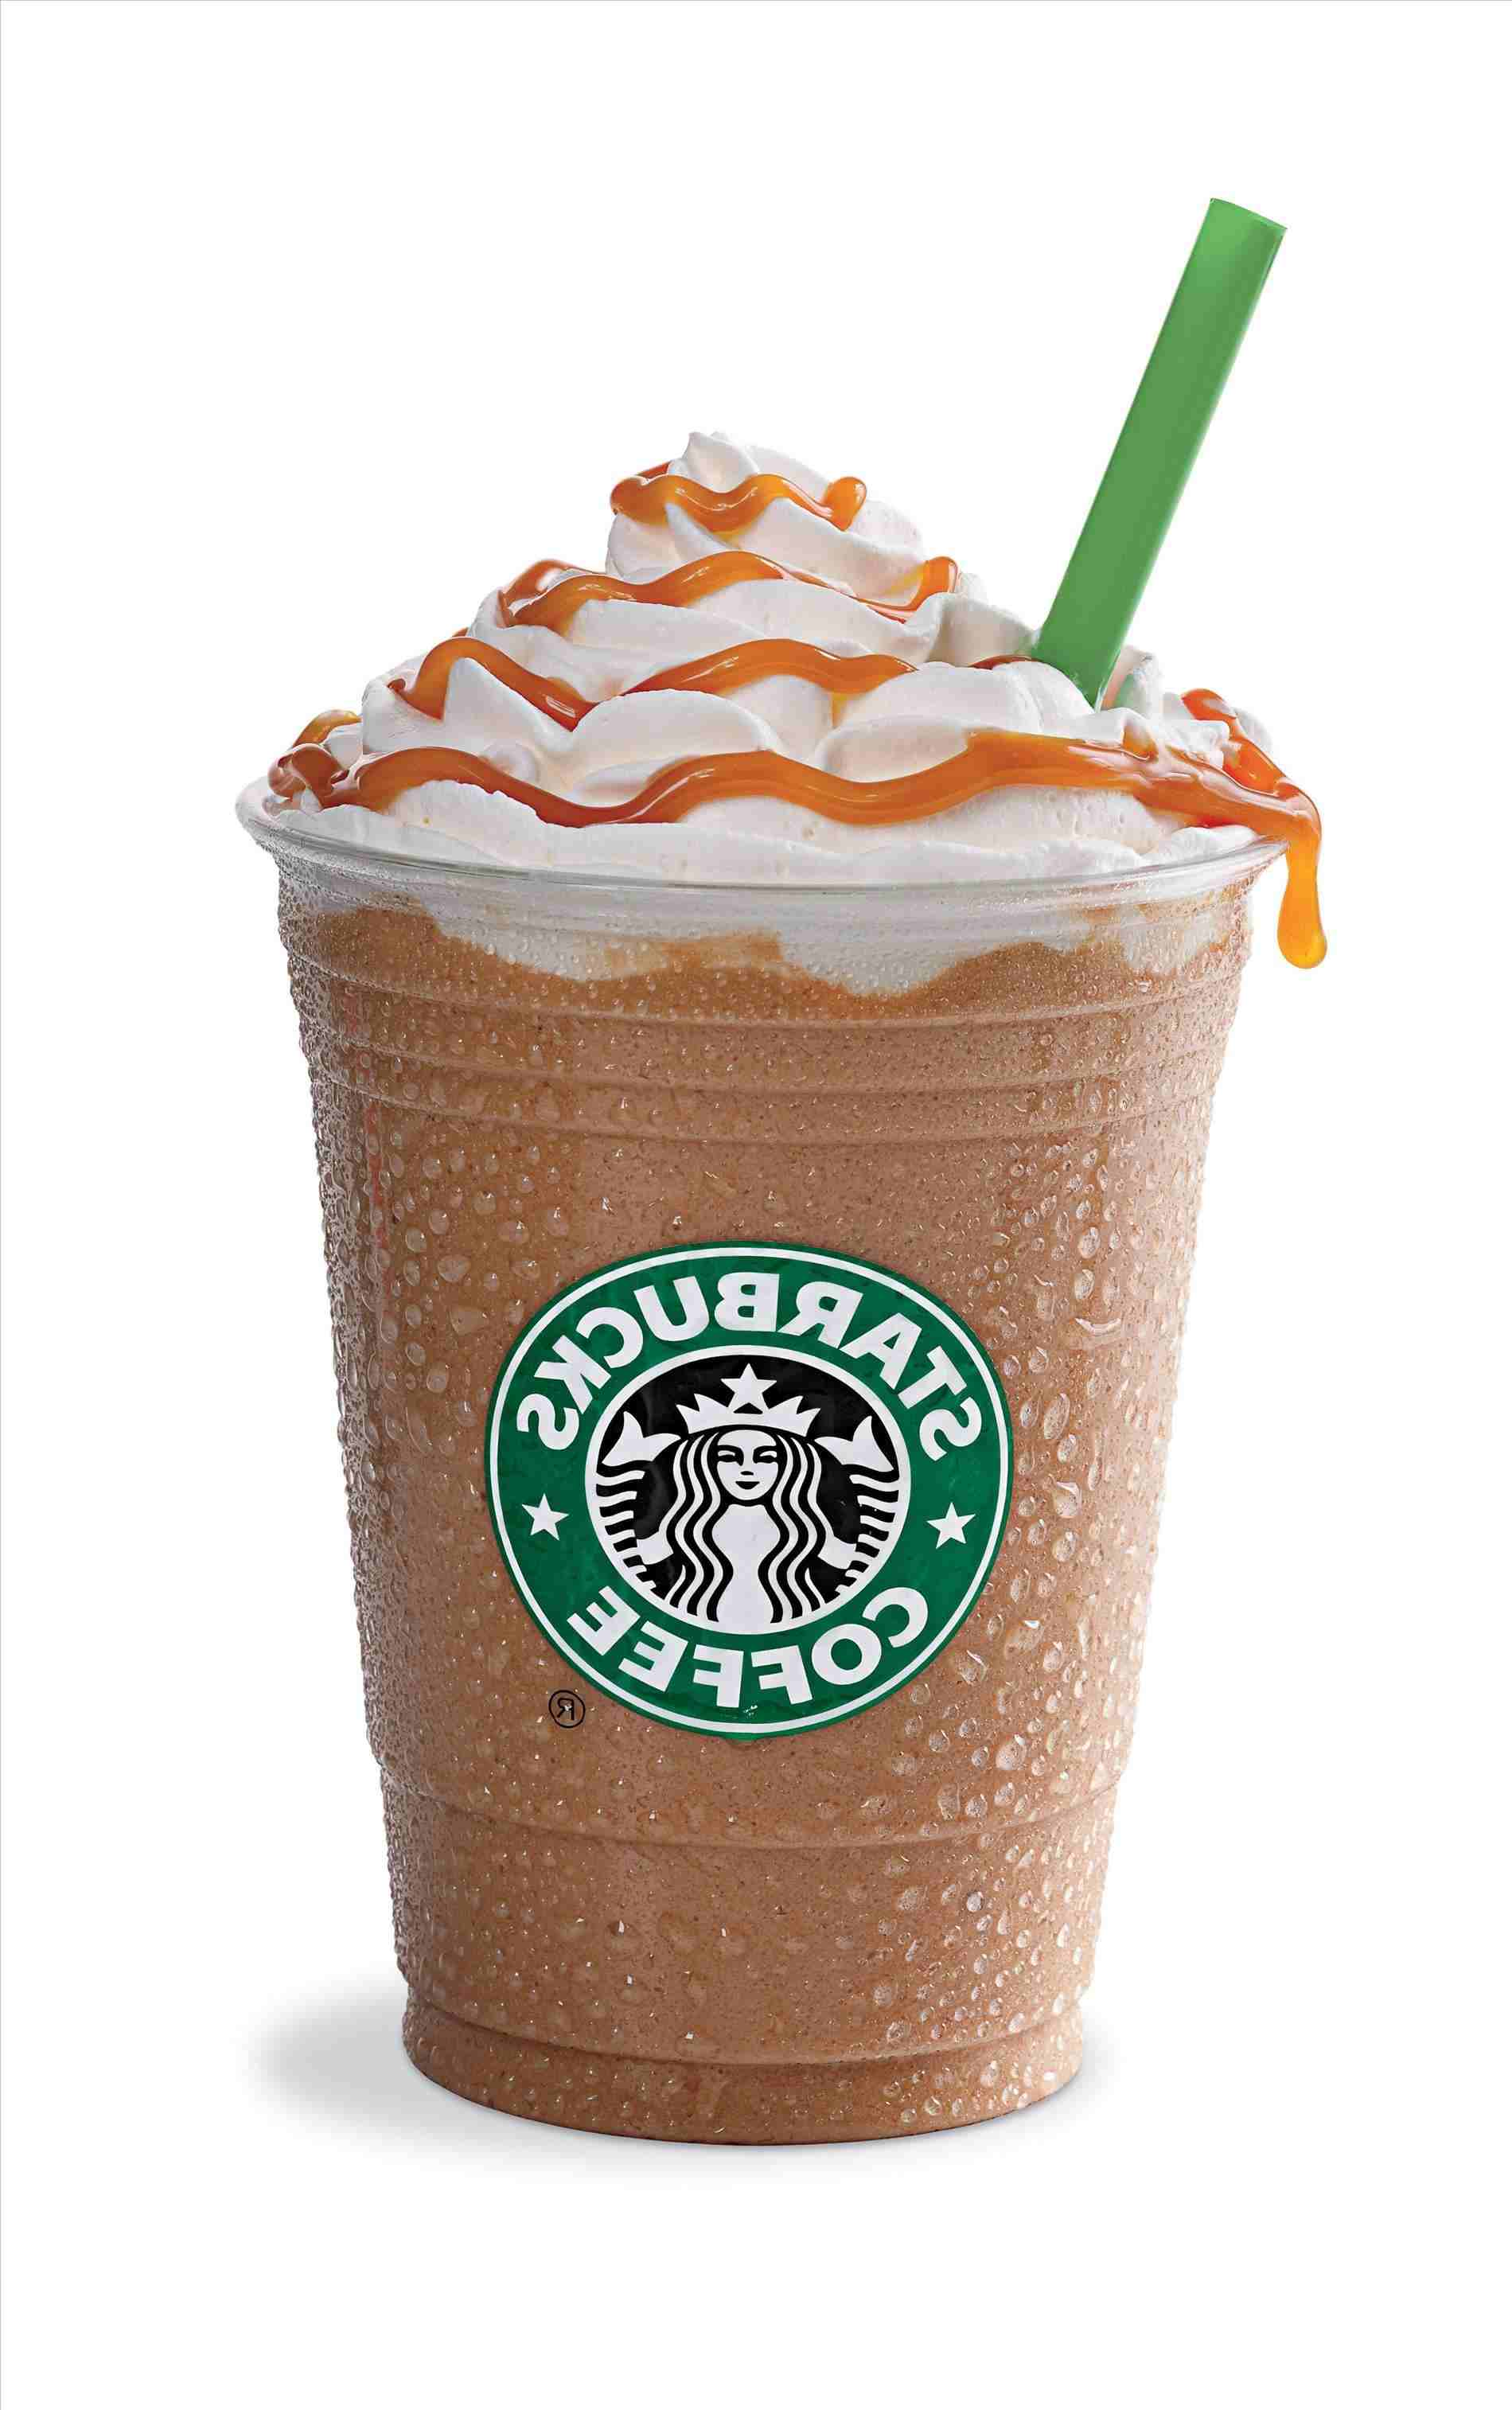 Frappachino clipart. Starbucks frappuccino frappe pencil